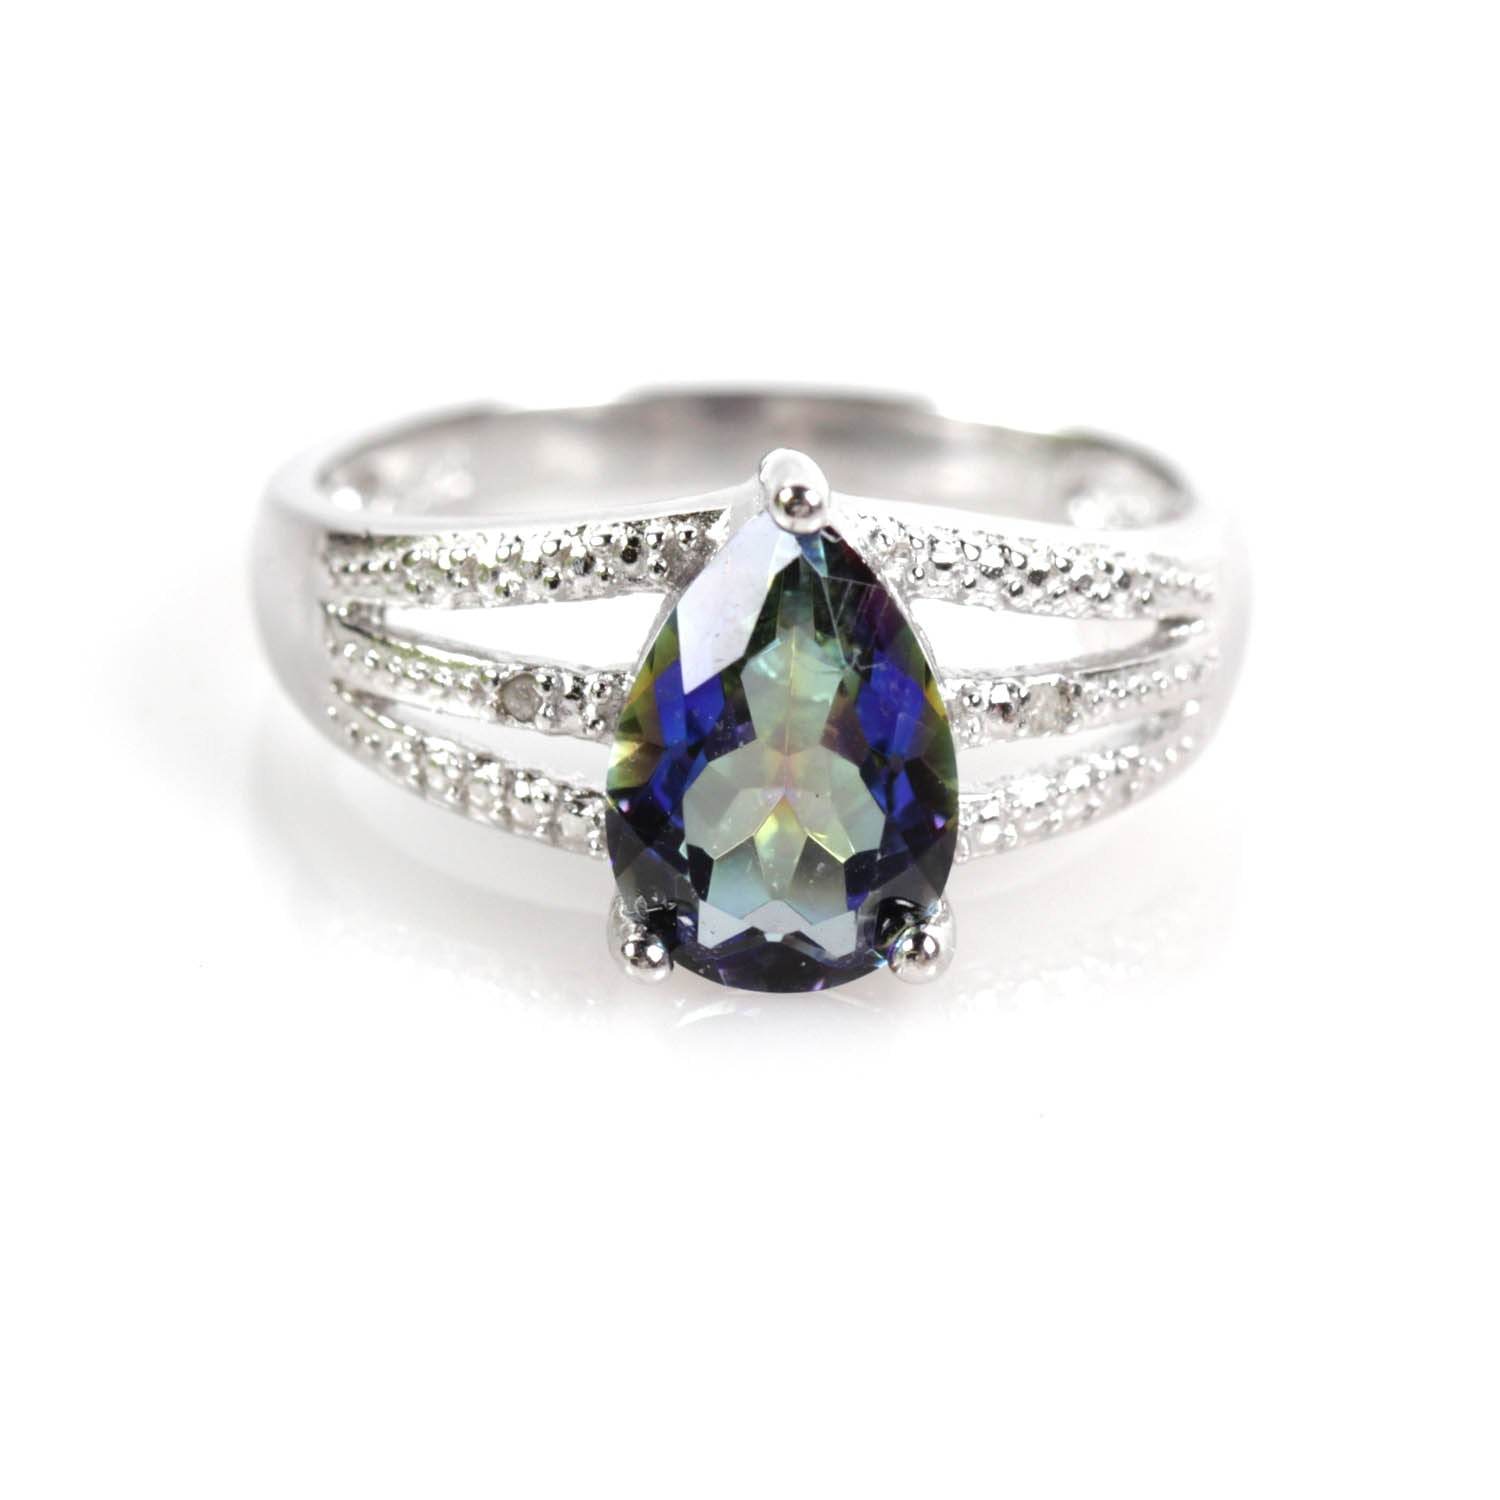 Sterling Silver Ring with Diamonds and Blue Green Synthetic Quartz